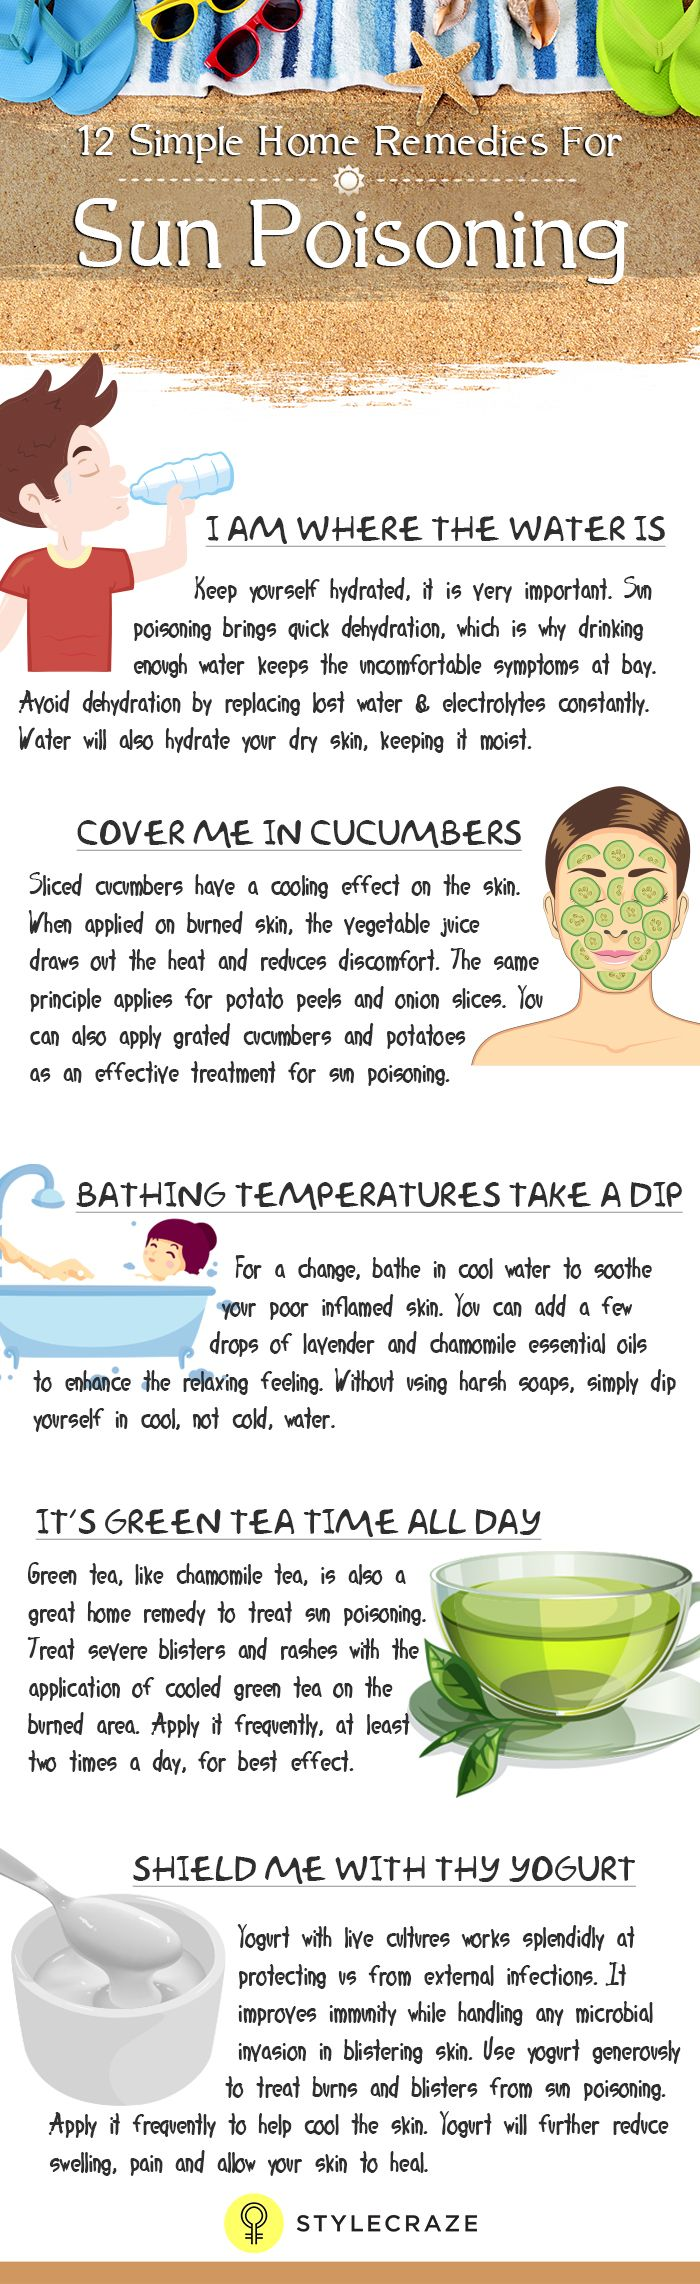 We all know over-exposure to sunlight and its ultra violet radiation (UV light) can cause severe sunburn. If this sunburn begins to affect your health, it's time to ring the alarm bells.  So, how do you recognize sun poisoning and what are you going to do about it? I have all the dope right here, collected from experiences of hapless friends. Do take a look.